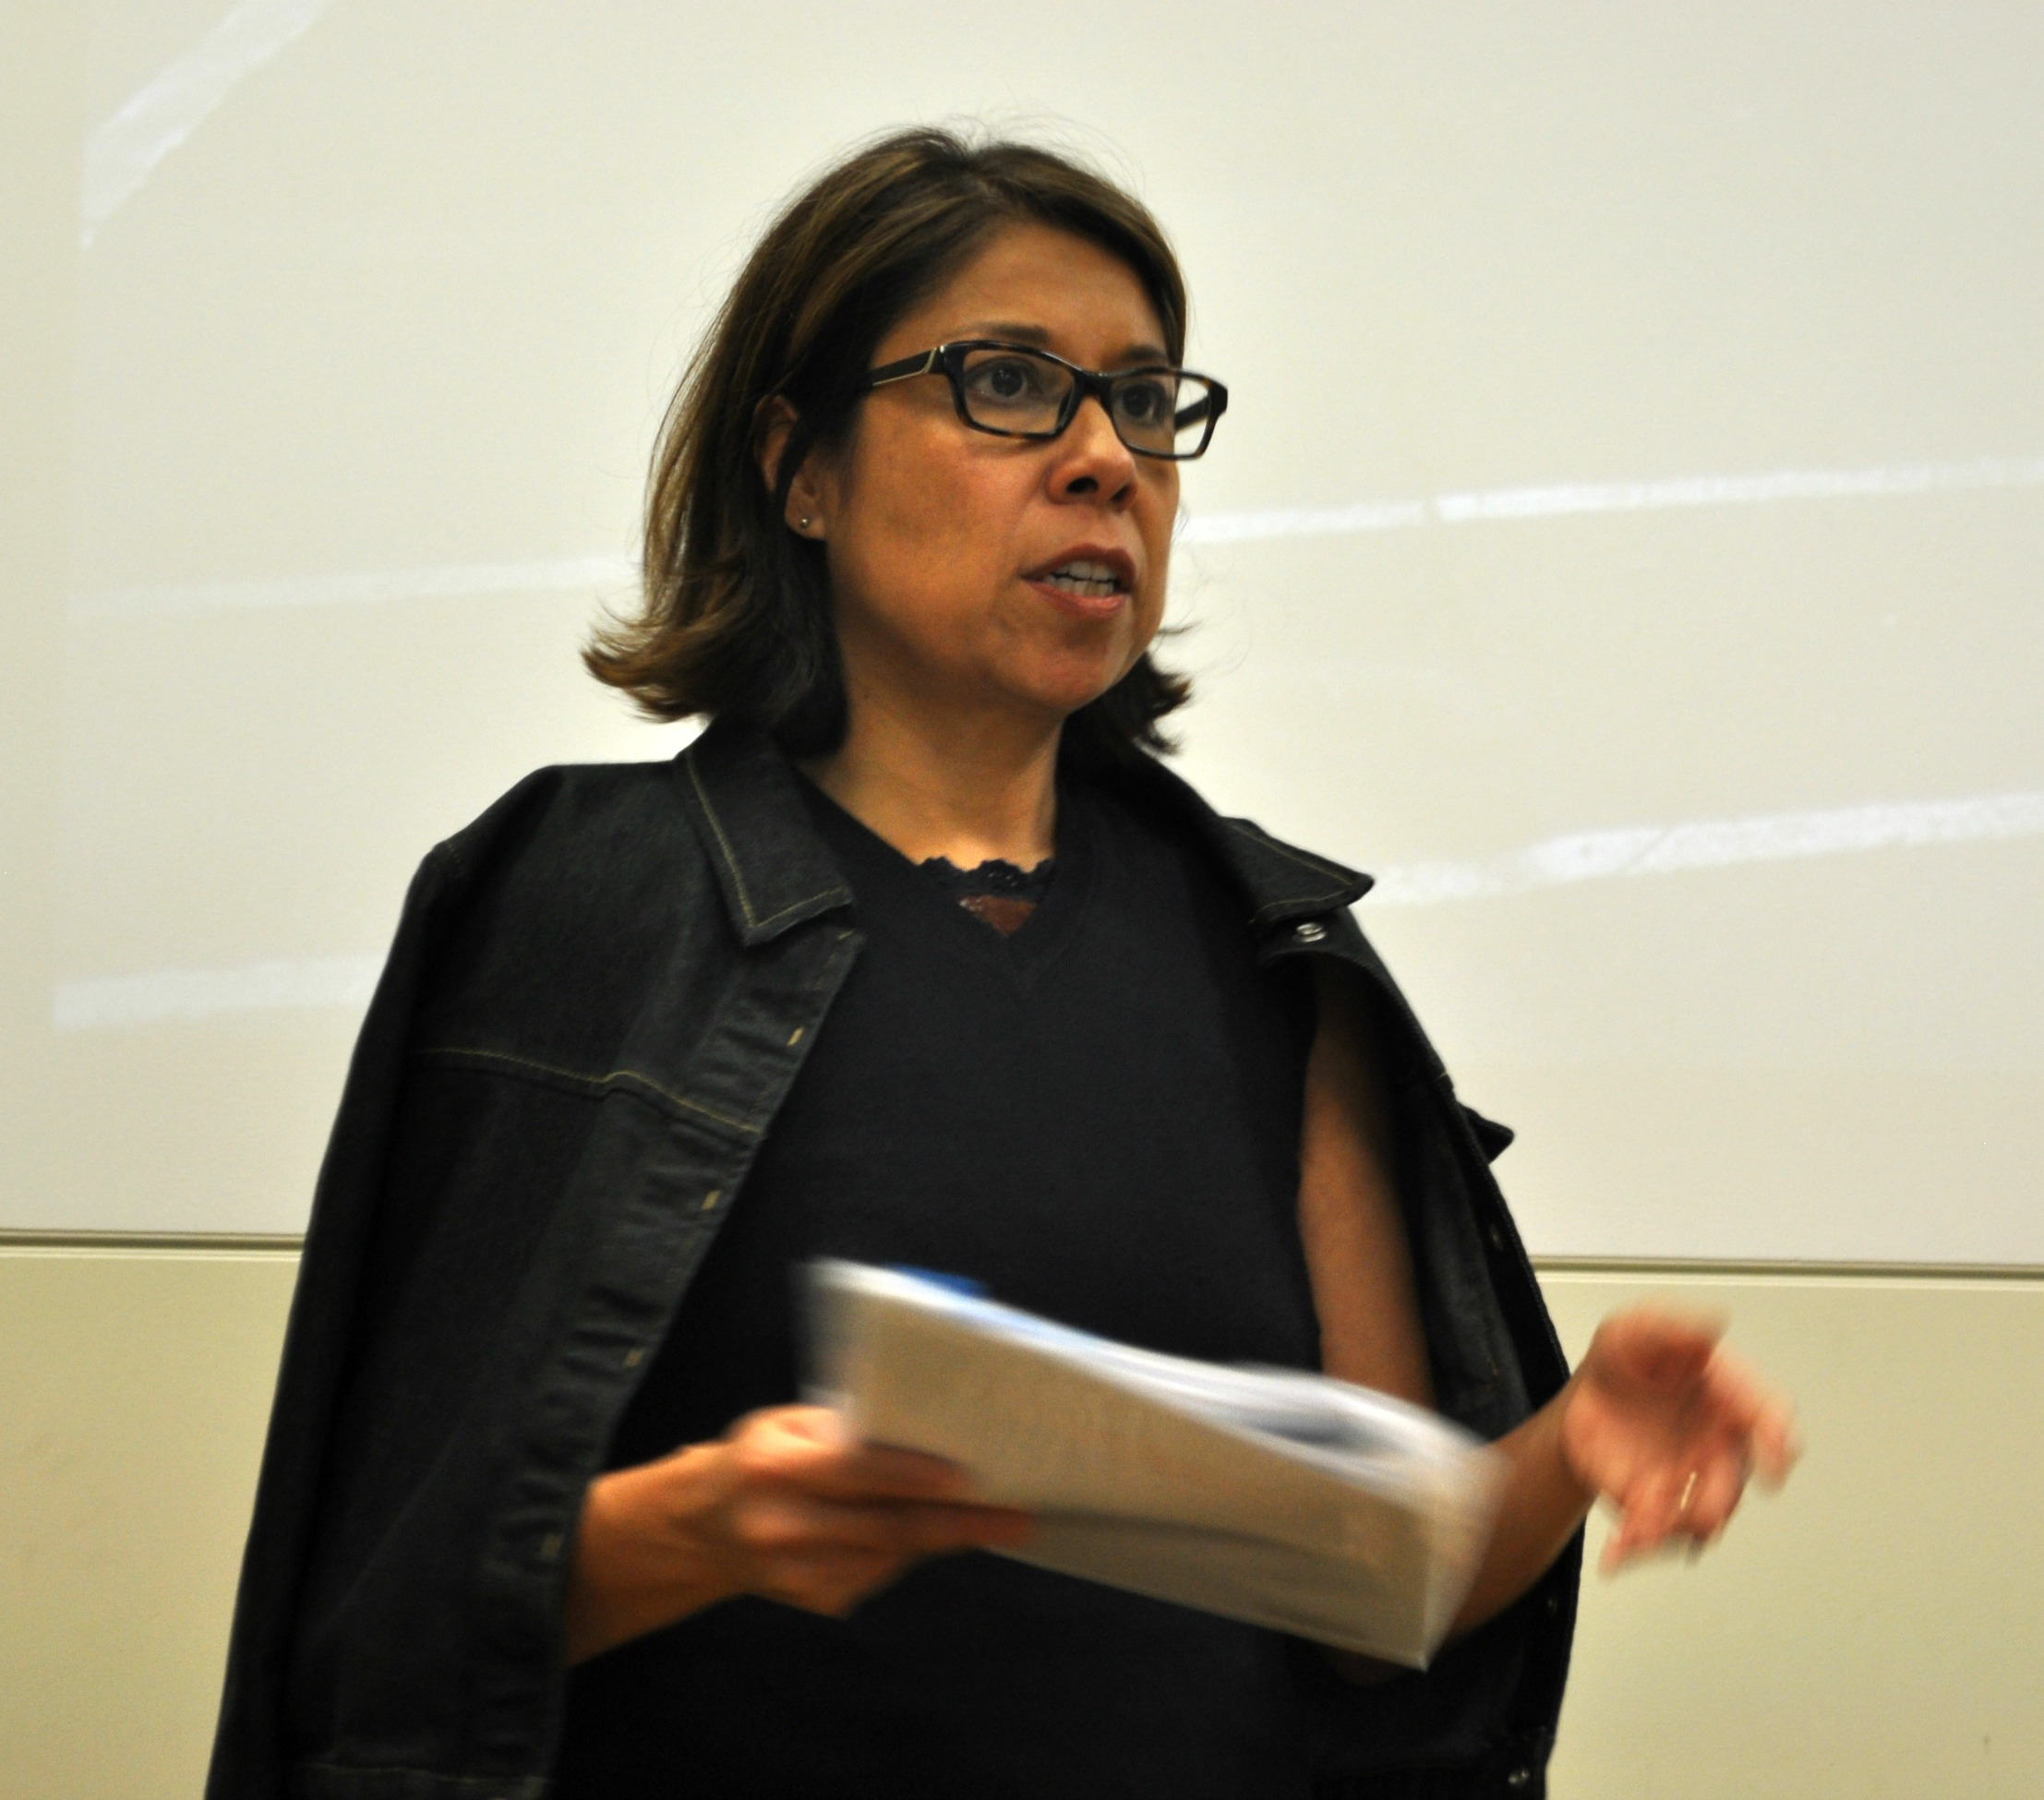 Monica Chavez-Silva, Director of Community Enhancement & Engagement at Grinnell College